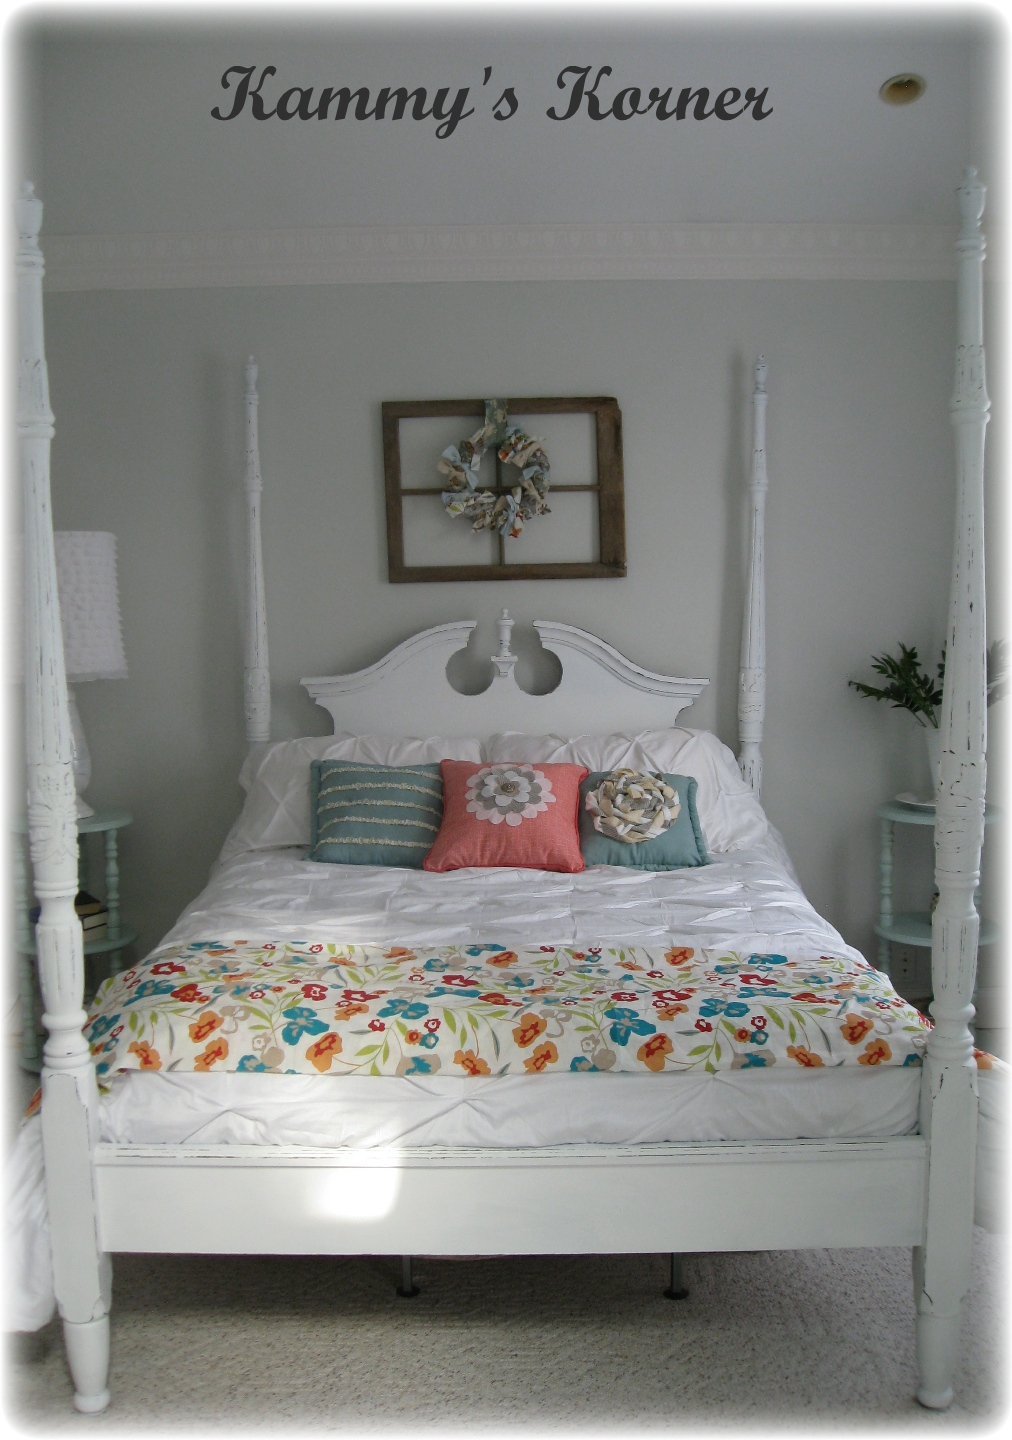 Kammy's Korner: Four Poster Bed: Cherry Finish Meets